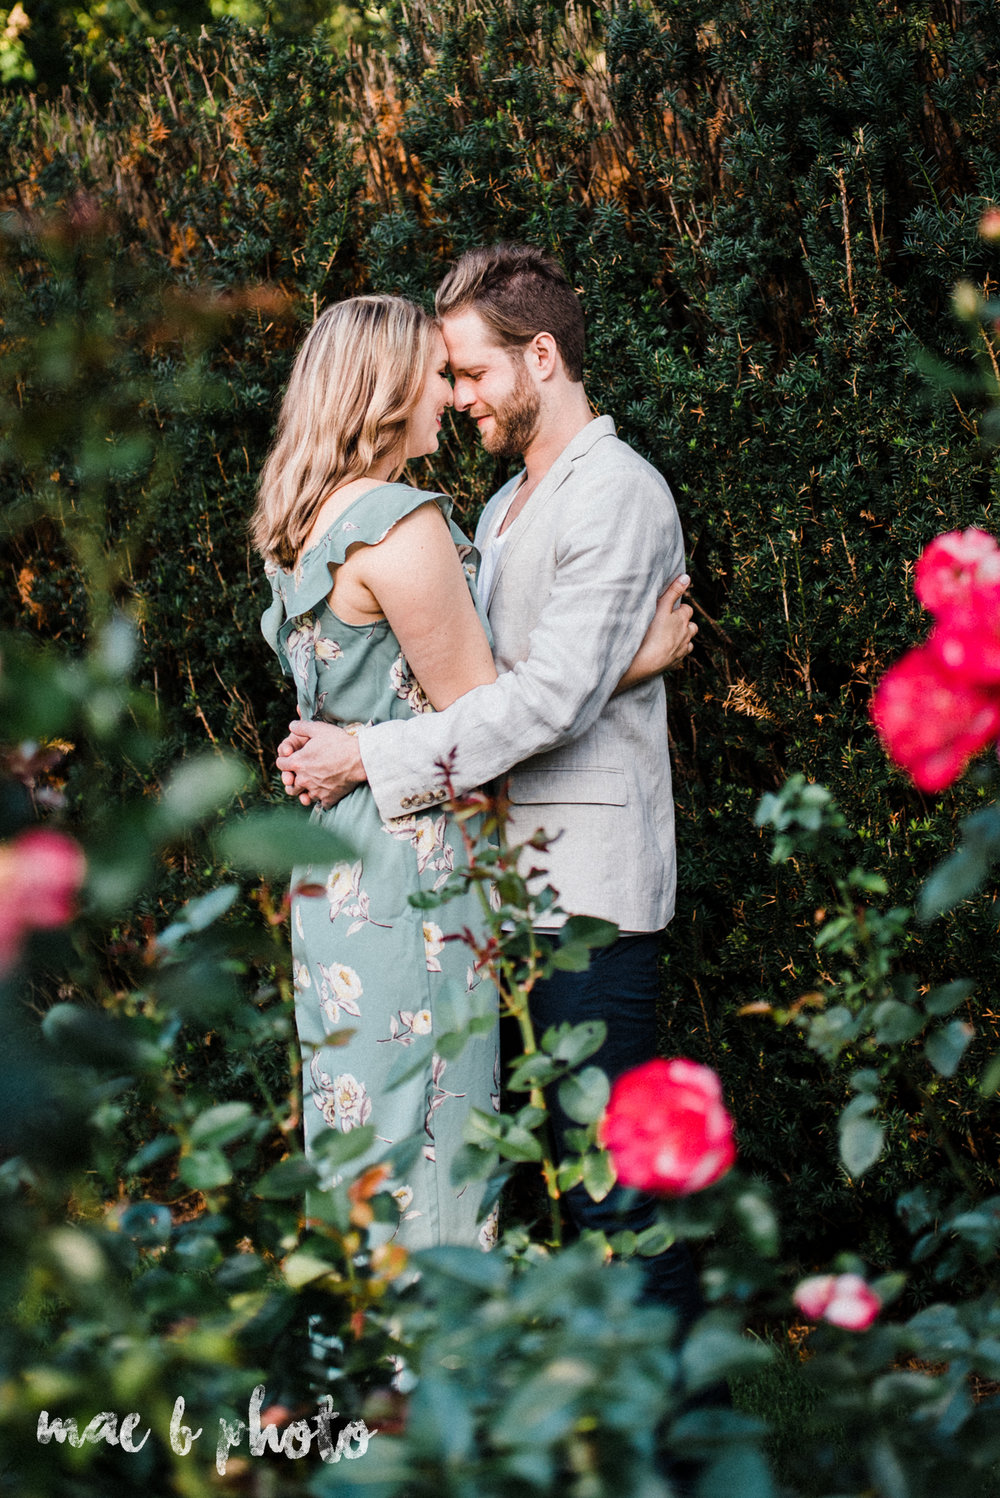 lauren and steve's summer engagement session at the rose gardens and lanterman's mill in mill creek park in youngstown ohio photographed by youngstown wedding photographer mae b photo-6.jpg